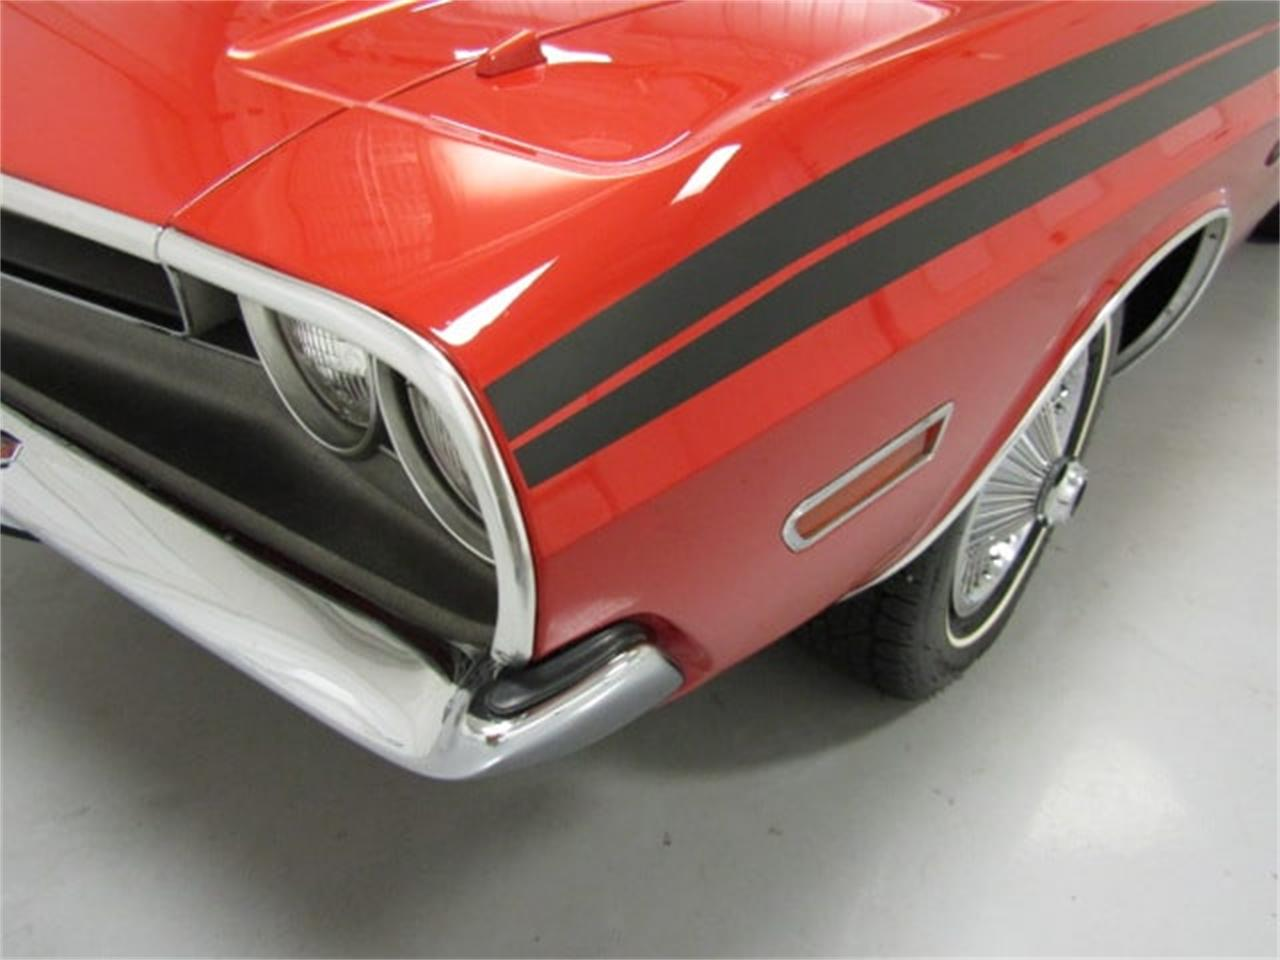 1971 Dodge Challenger (CC-1337399) for sale in Christiansburg, Virginia